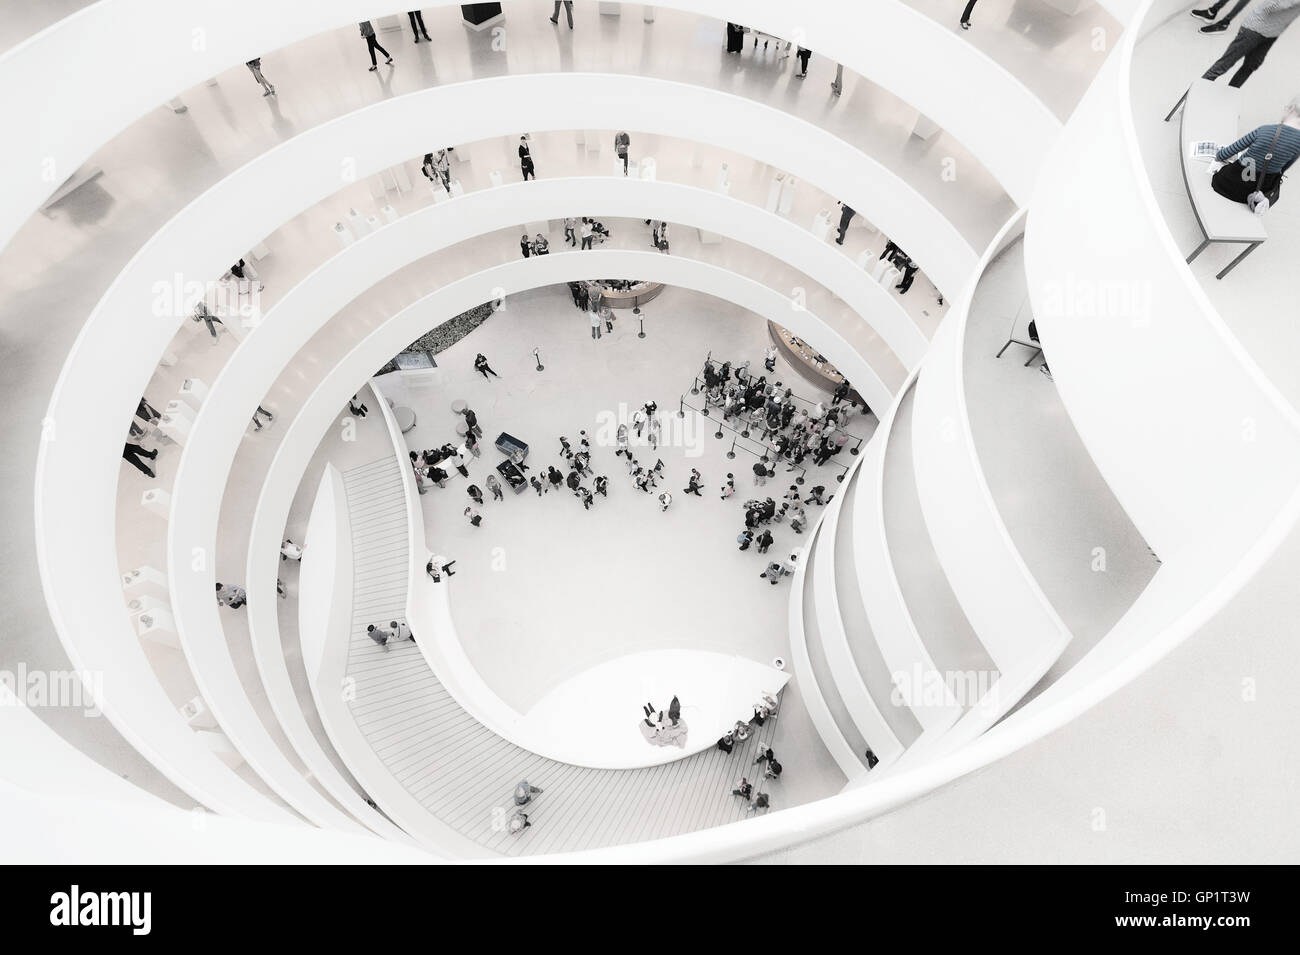 Guggenheim Museum, New York, looking down - Stock Image